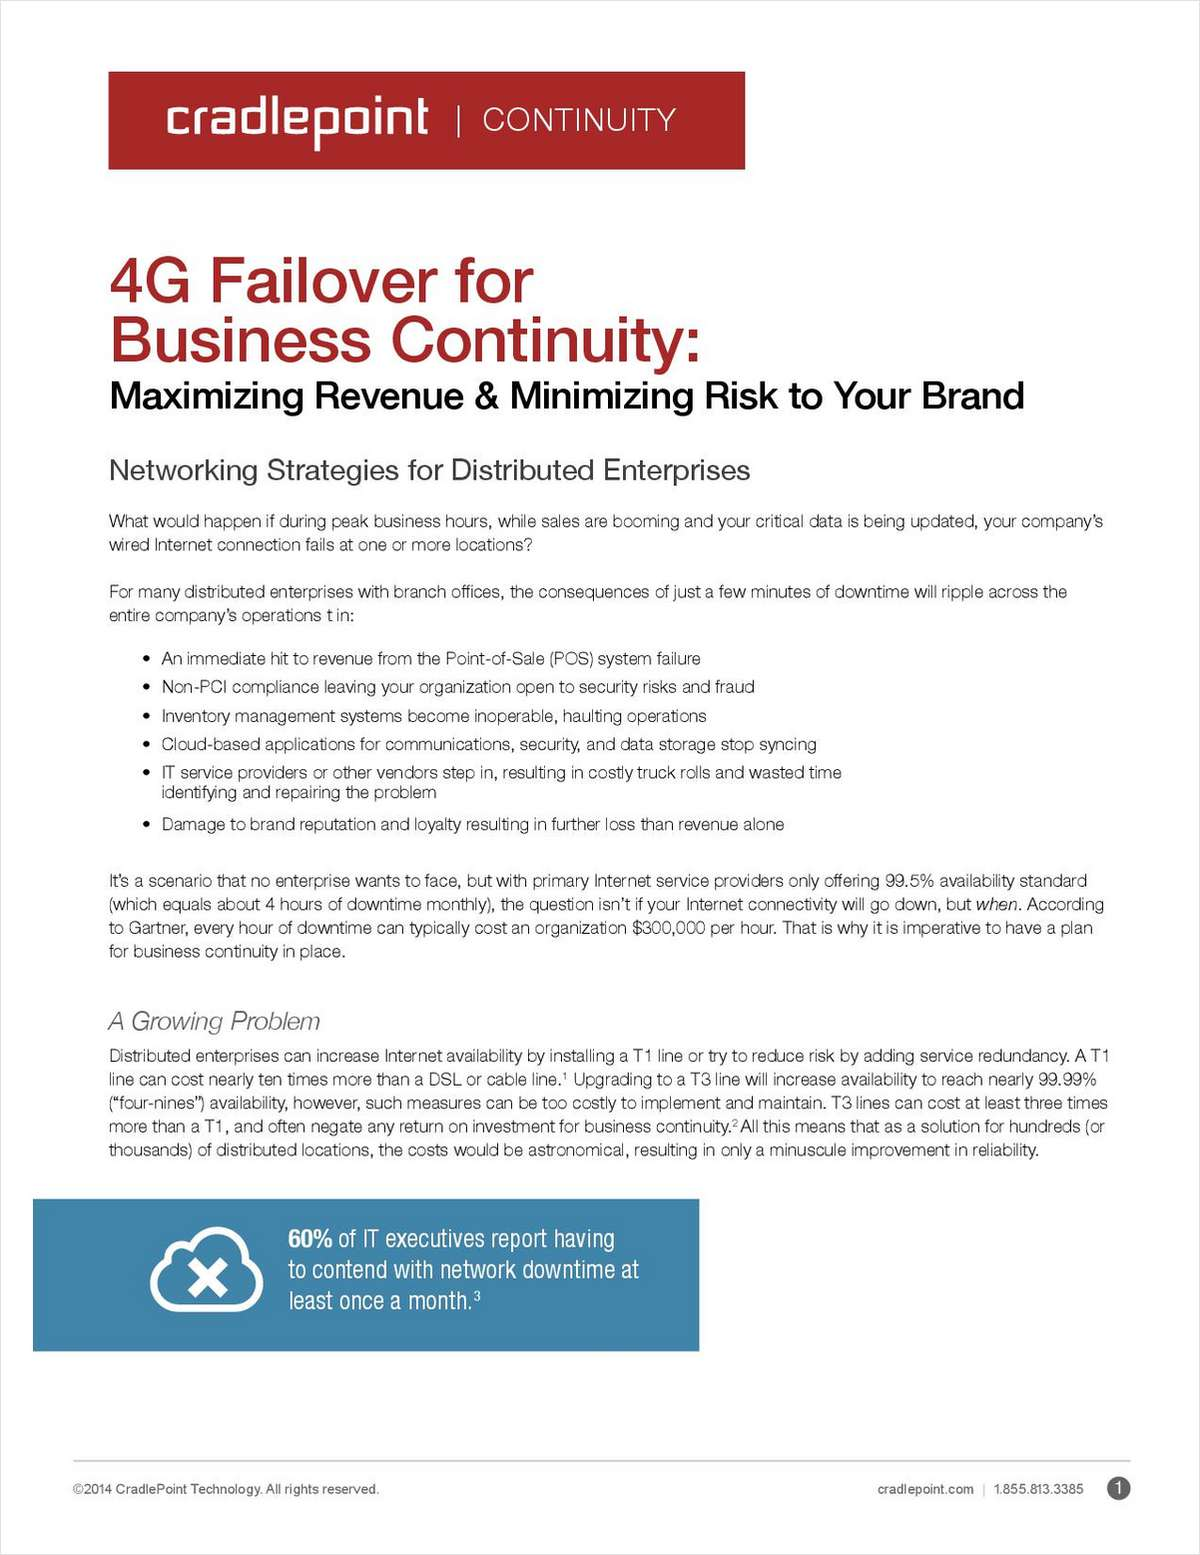 4G Failover for Business Continuity: Maximizing Revenue and Minimizing Business Risk to Your Brand